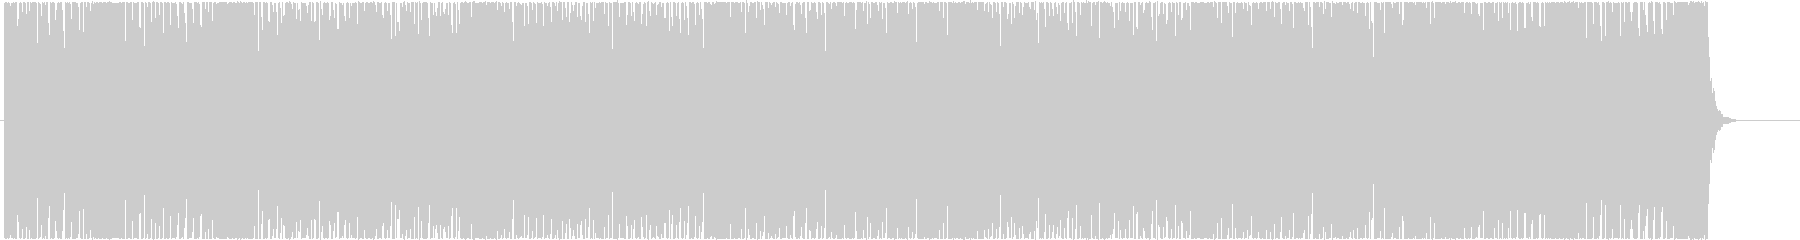 Up-tempo and dynamic BGM's unreproduced waveform